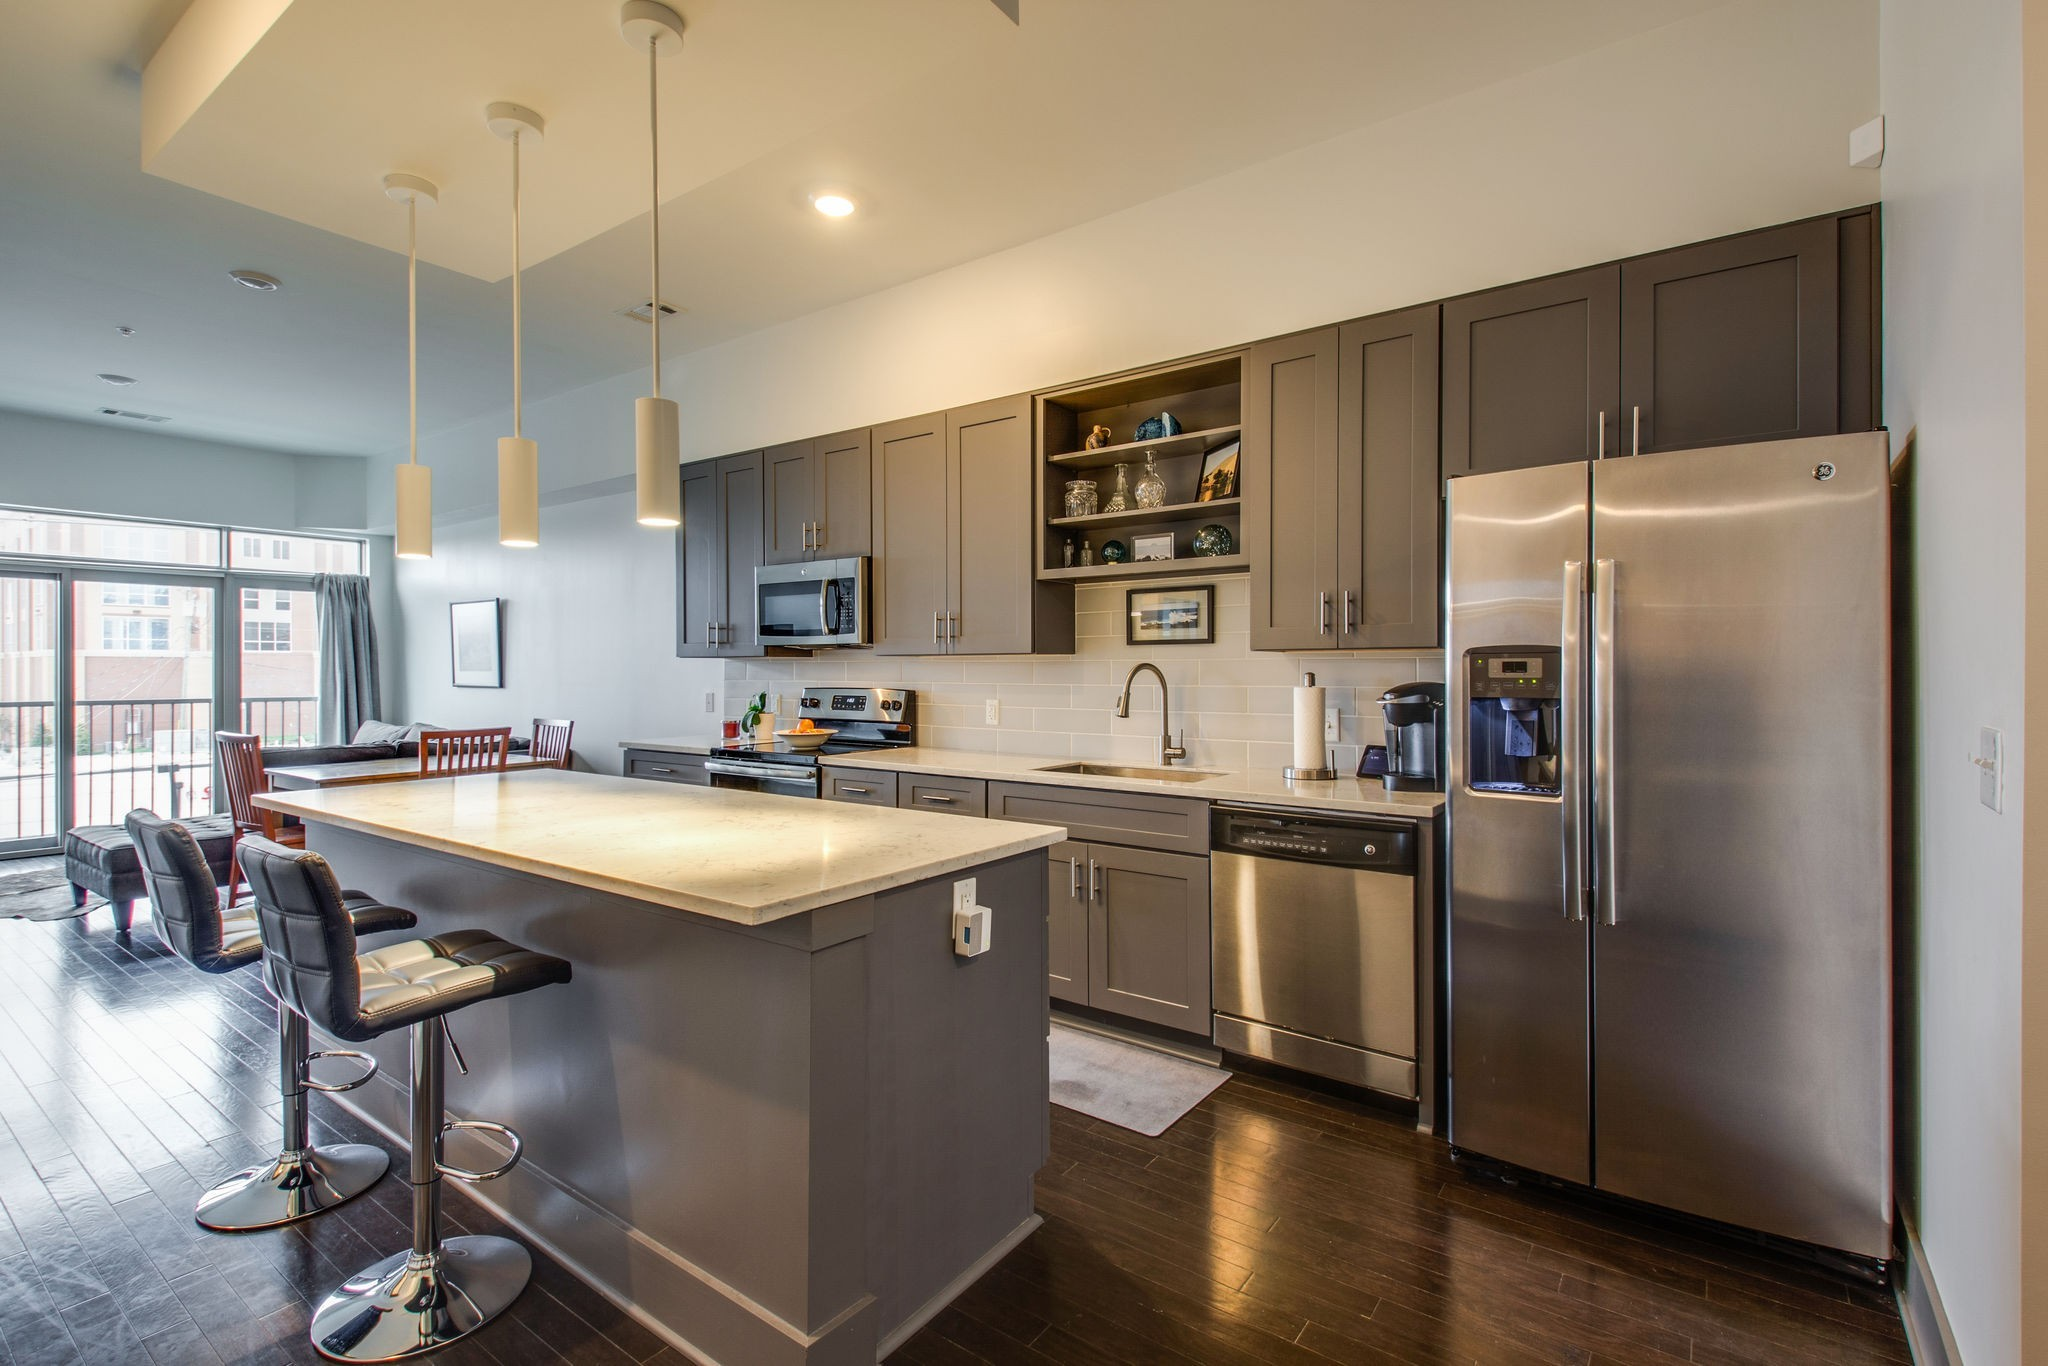 2407 8th Ave, S, Nashville-Southeast, Tennessee